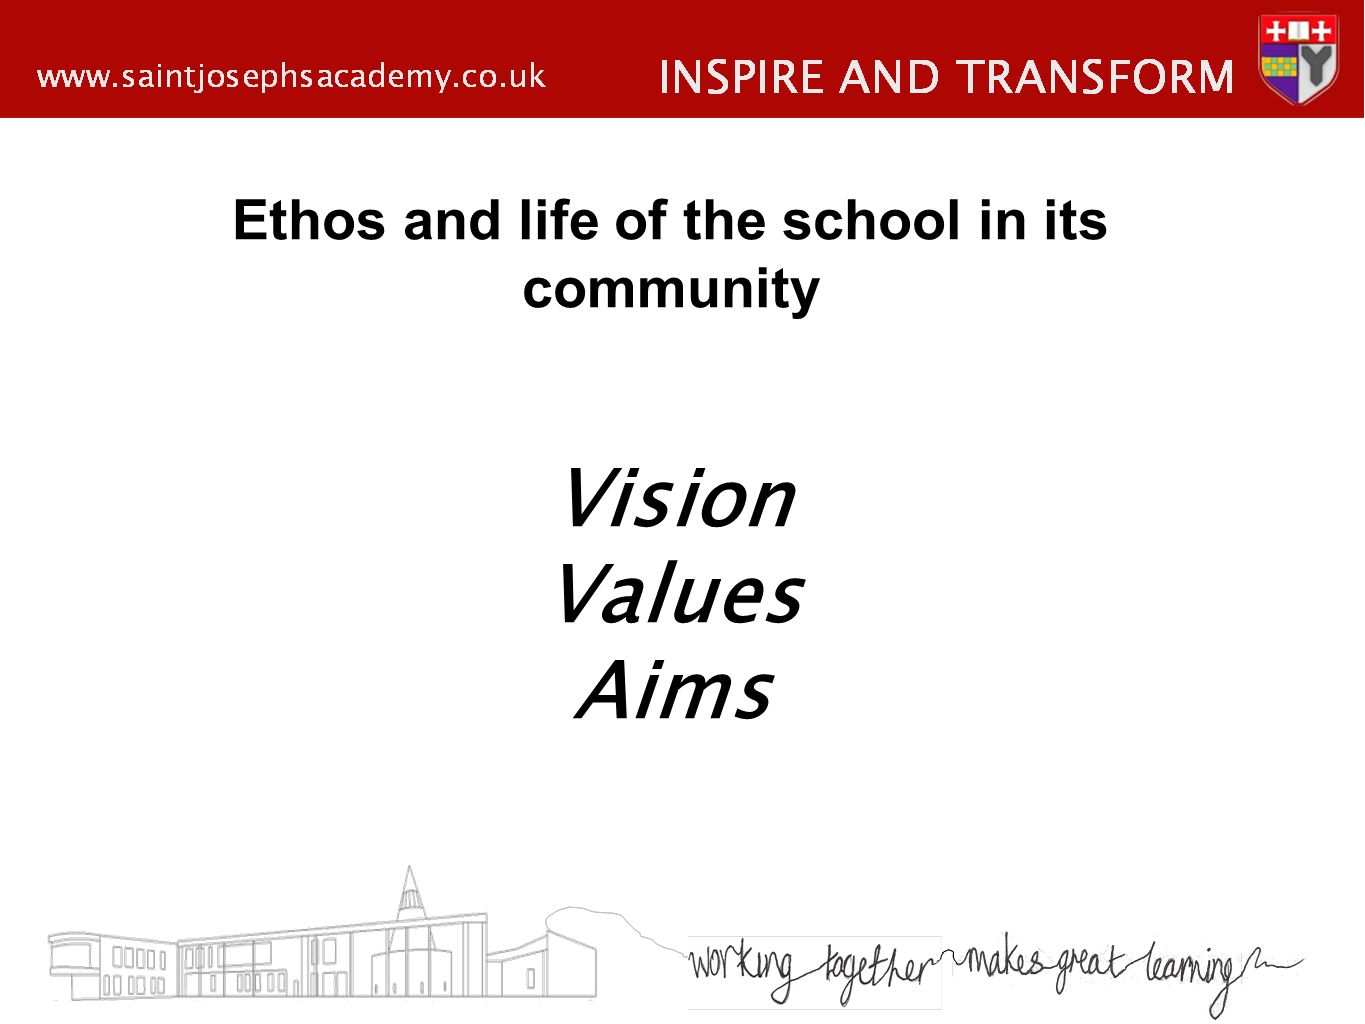 Ethos and life of the school in its community Vision Values Aims